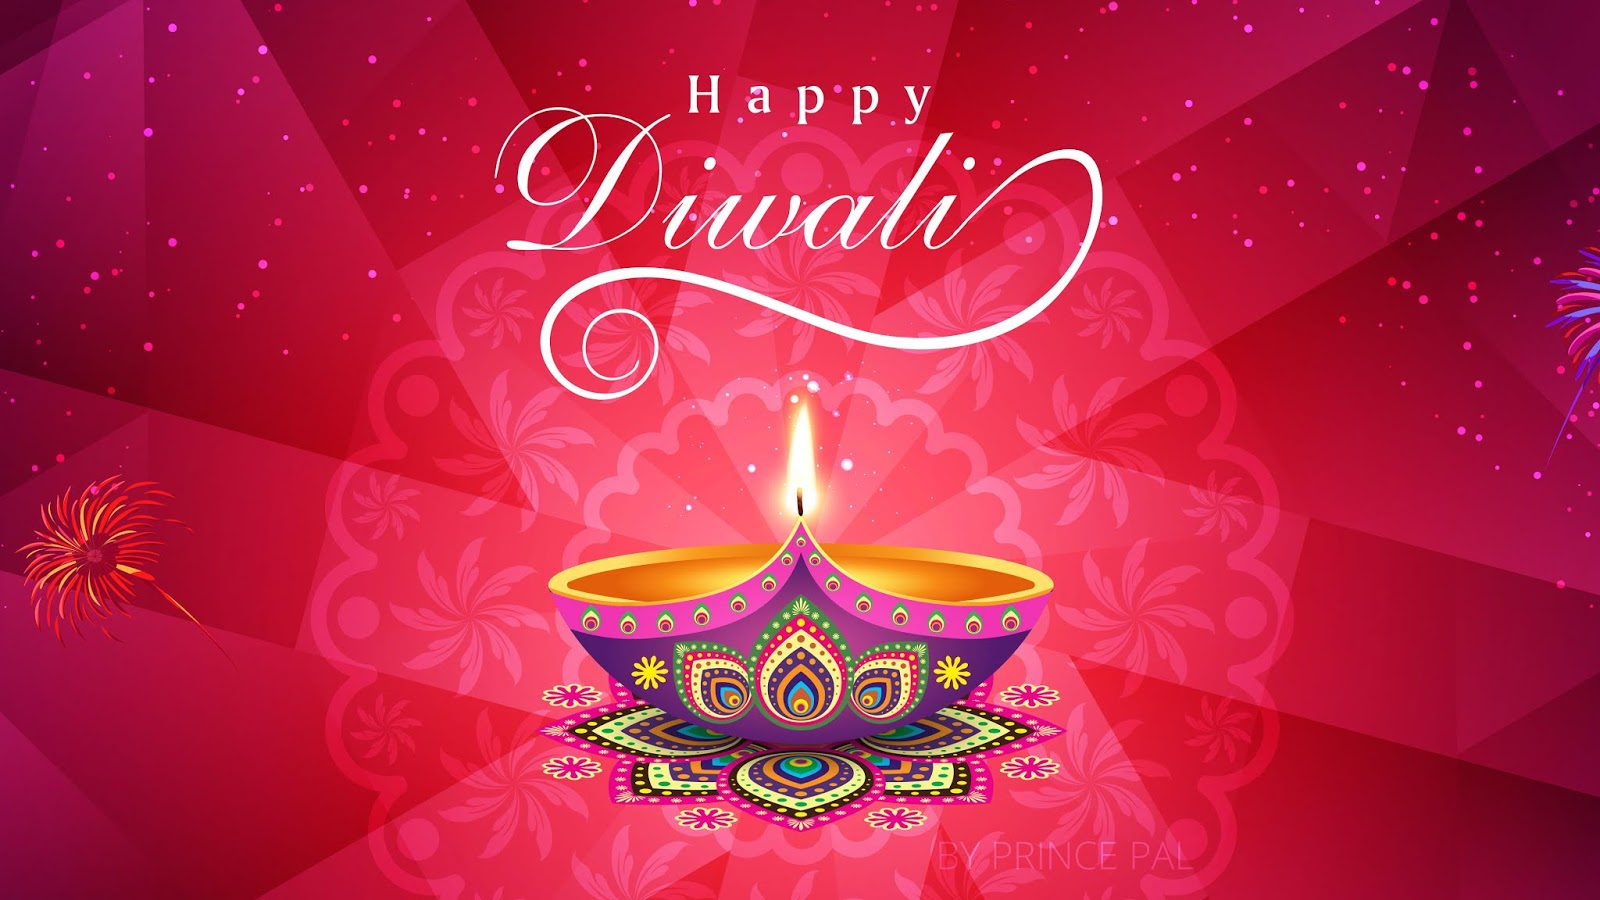 Happy Diwali 2018 HD Wallpaper